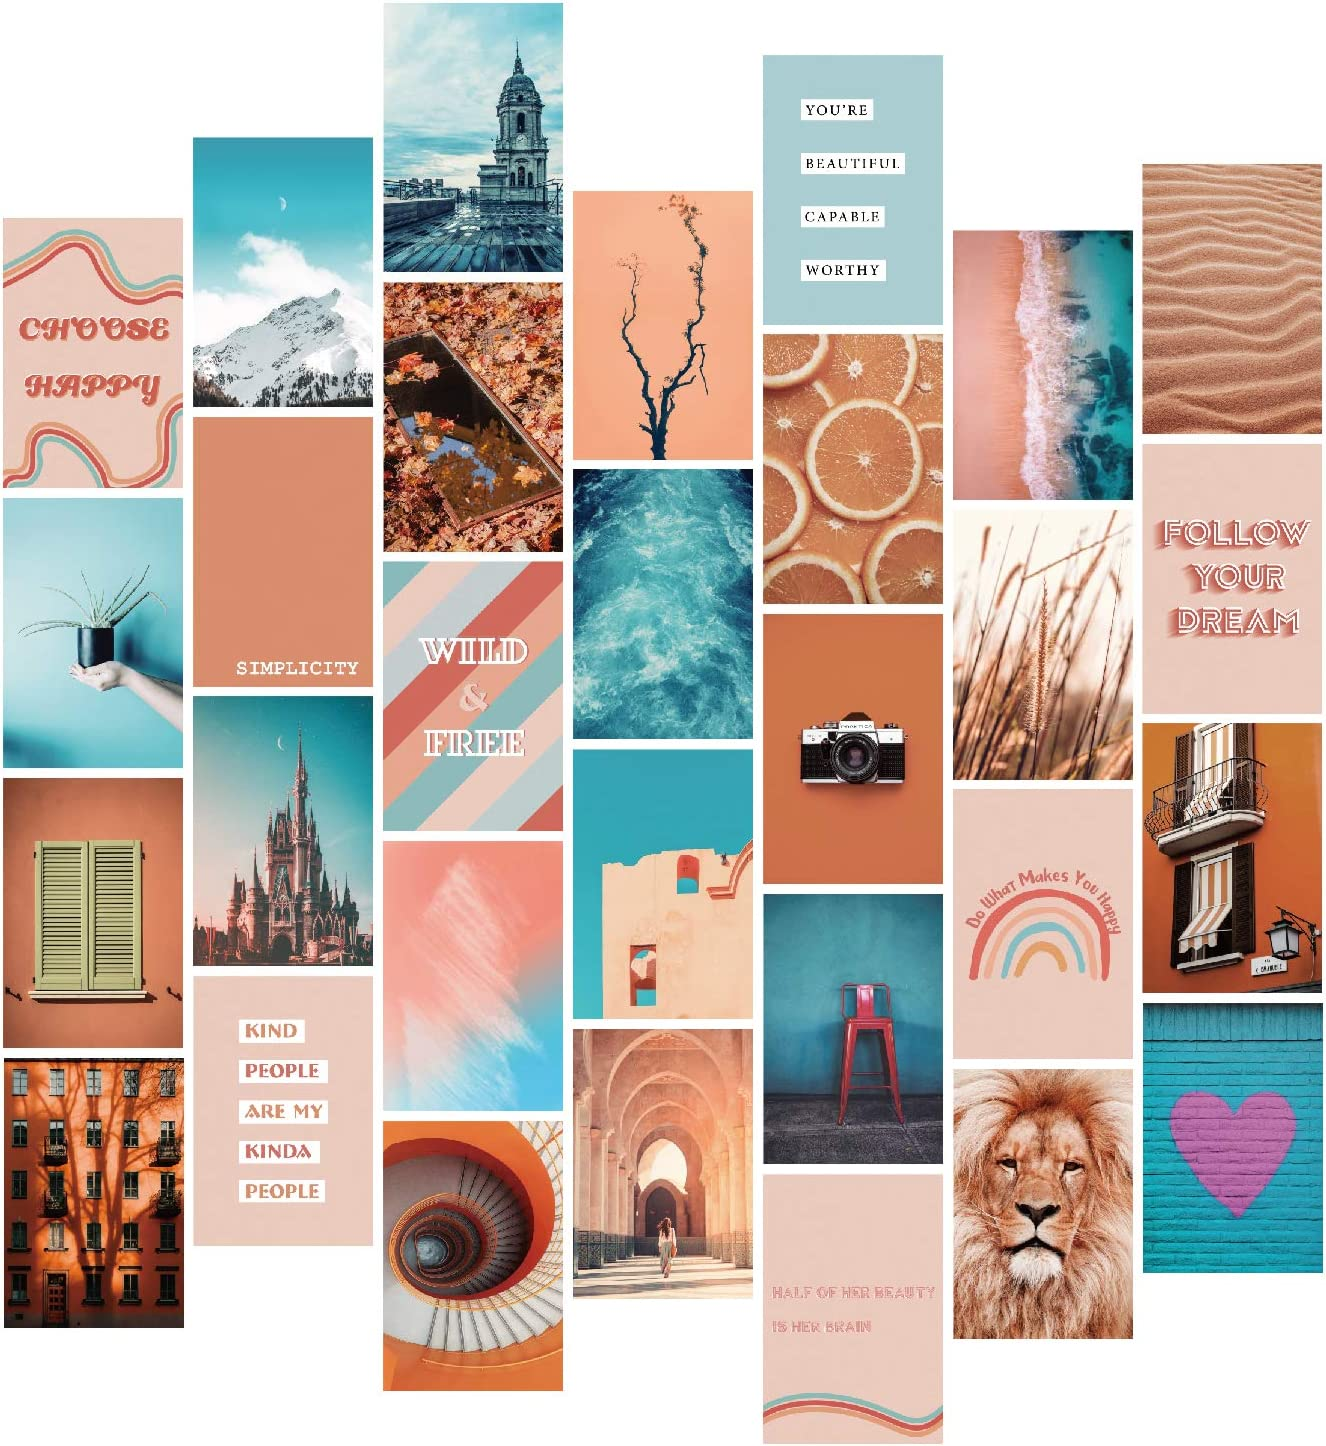 YUMKNOW Aesthetic Wall Collage Kit - 4x6 inch Set of 30, Teen Girl Room Decor for Bedroom Dorm, Boho Modern Wall Art, Peach Teal Blue Photo Picture Posters, Inspirational Gift for Teenage Girls Her